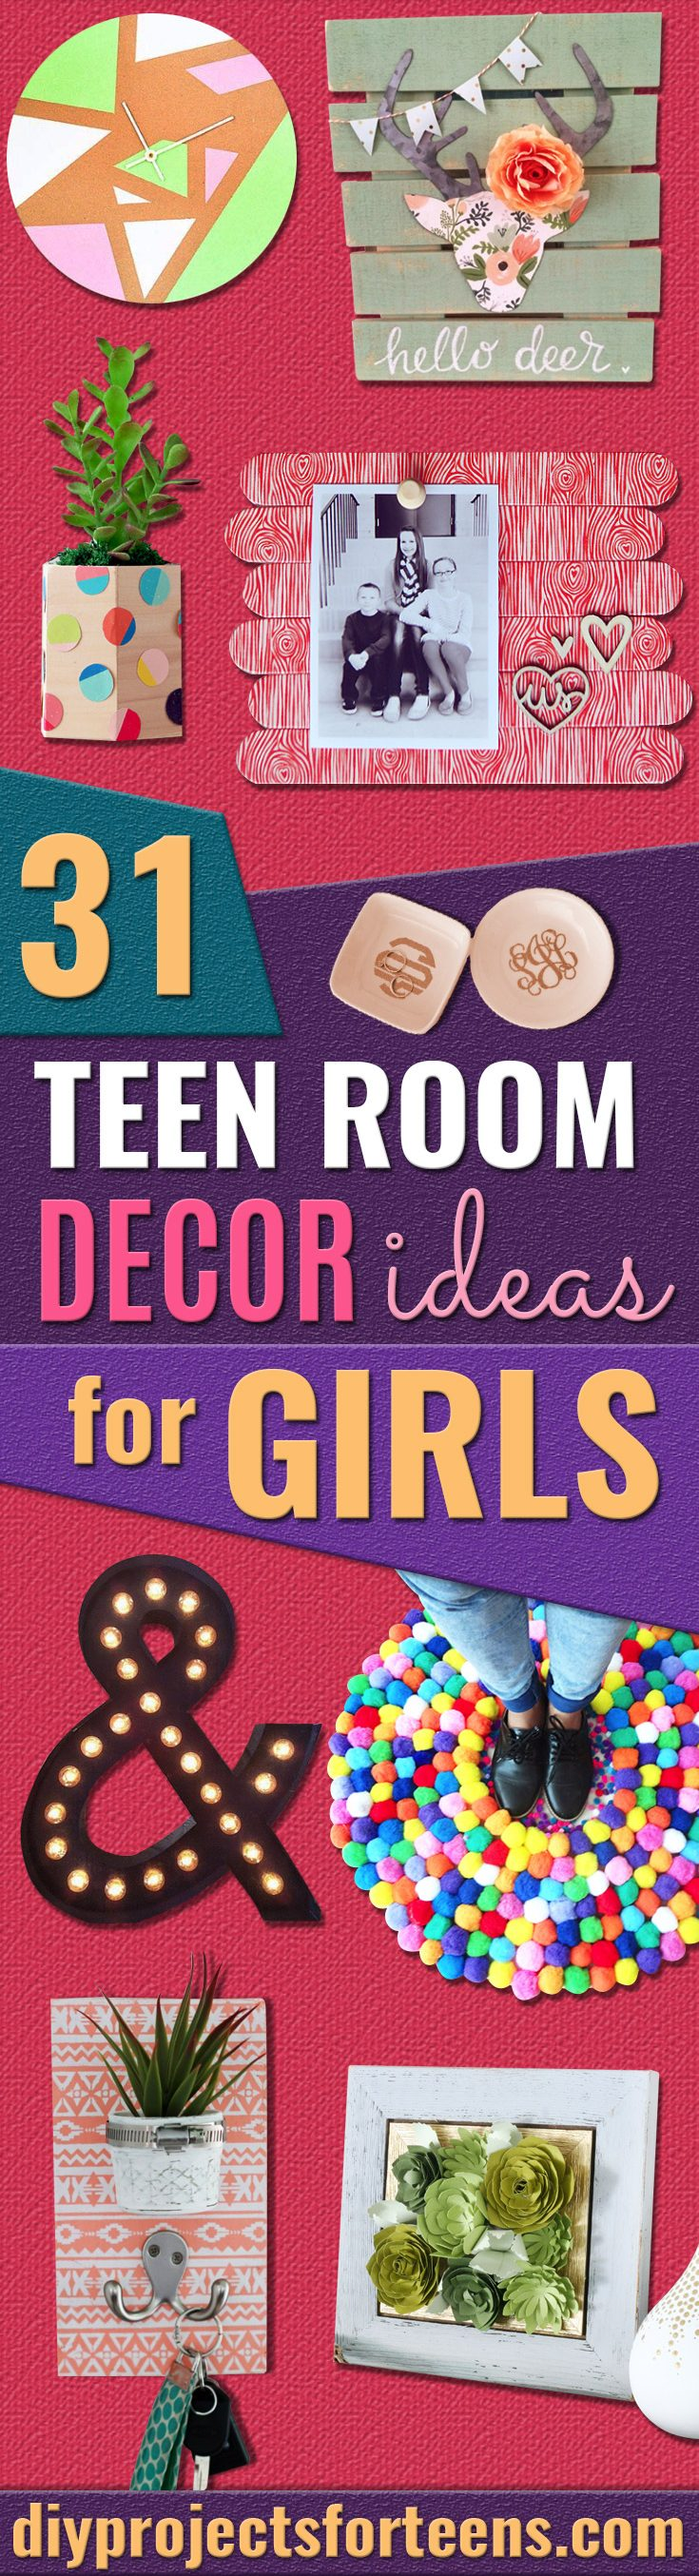 DIY Teen Room Decor Ideas for Girls - Creative Ideas for Teens, Tweens and Teenagers Rooms -Cool Bedroom Decor, Wall Art & Signs, Crafts, Bedding, Fun Do It Yourself Projects and Room Ideas for Small Spaces #teencrafts #roomdecor #teens #diy